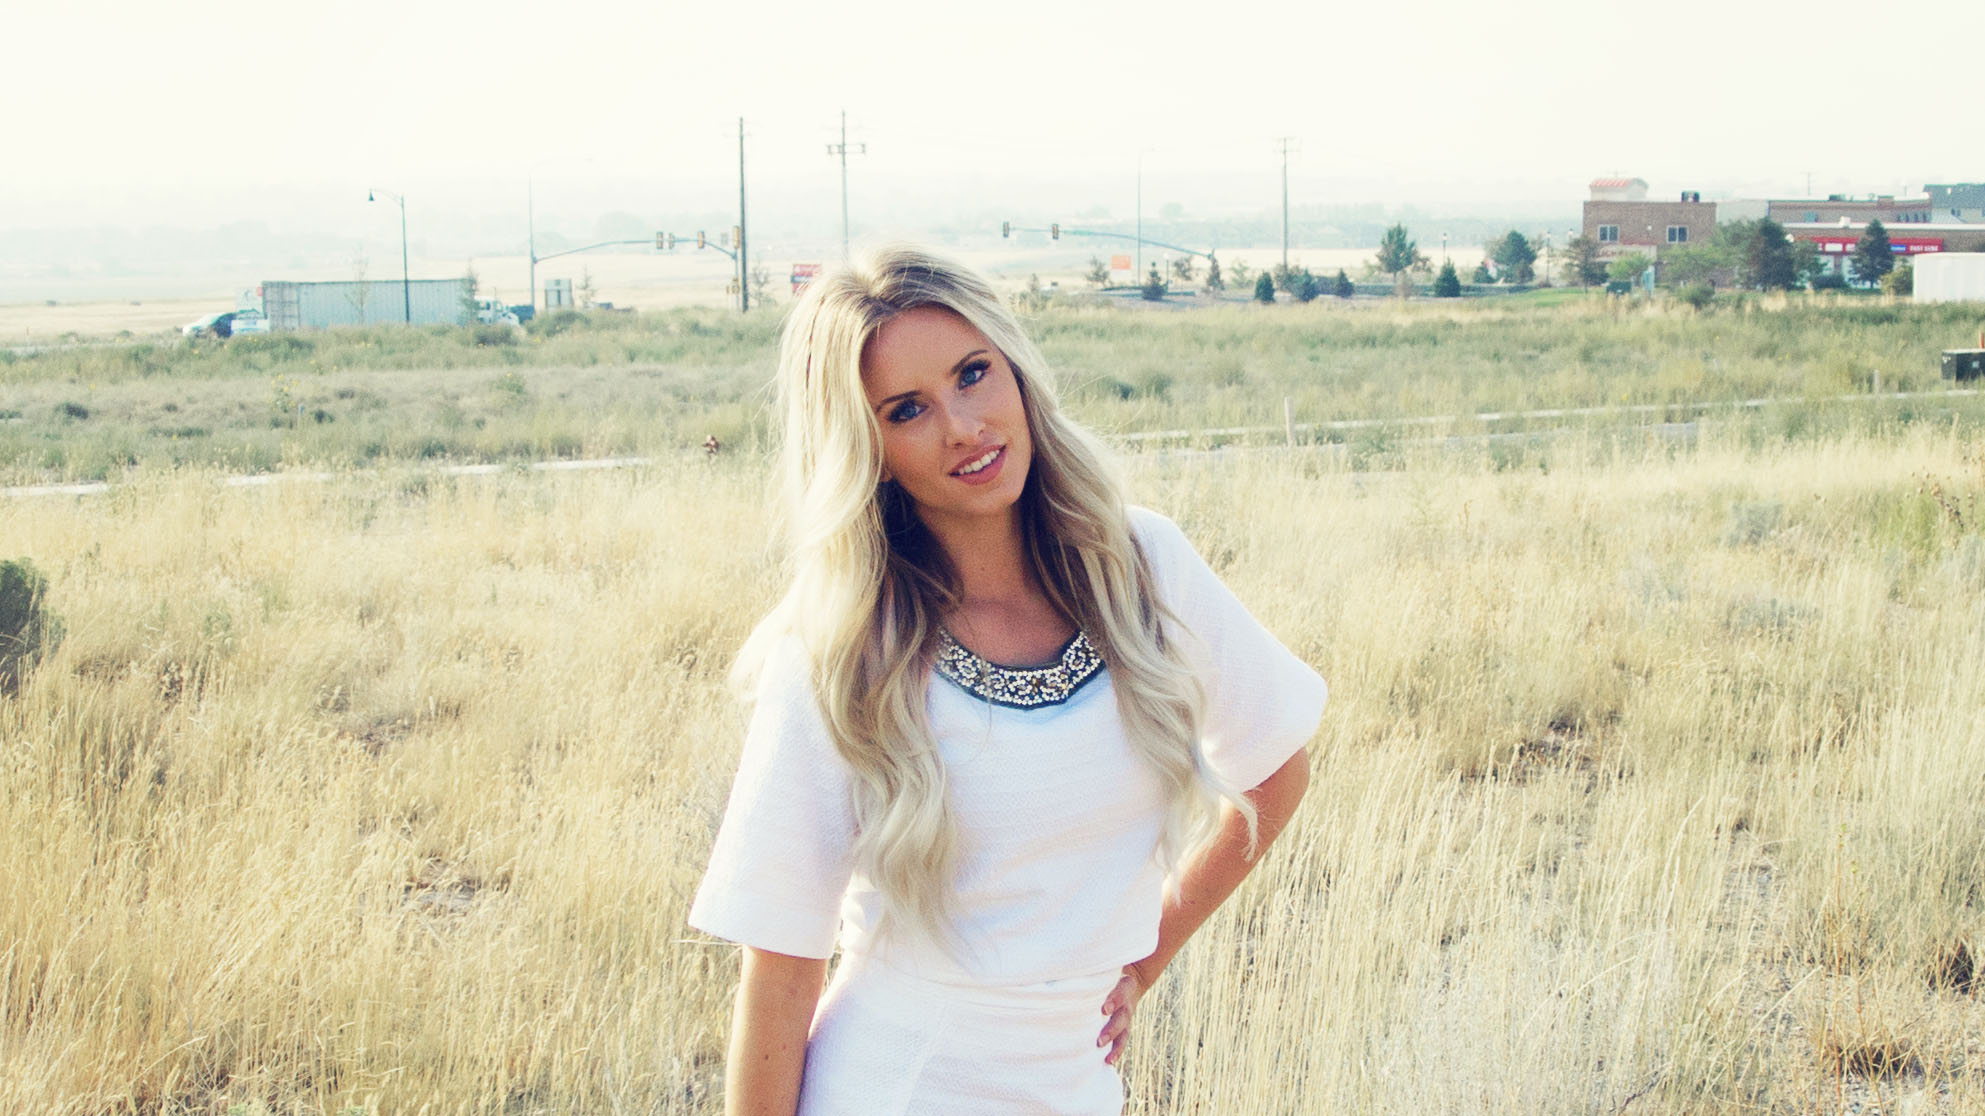 Glam Seamless Clip-in Hair Extension Review | Glam Seamless Hair Extensions Review by popular Utah beauty blogger, Kara Metta: image of a woman wearing Glam Seamless Hair Extensions.